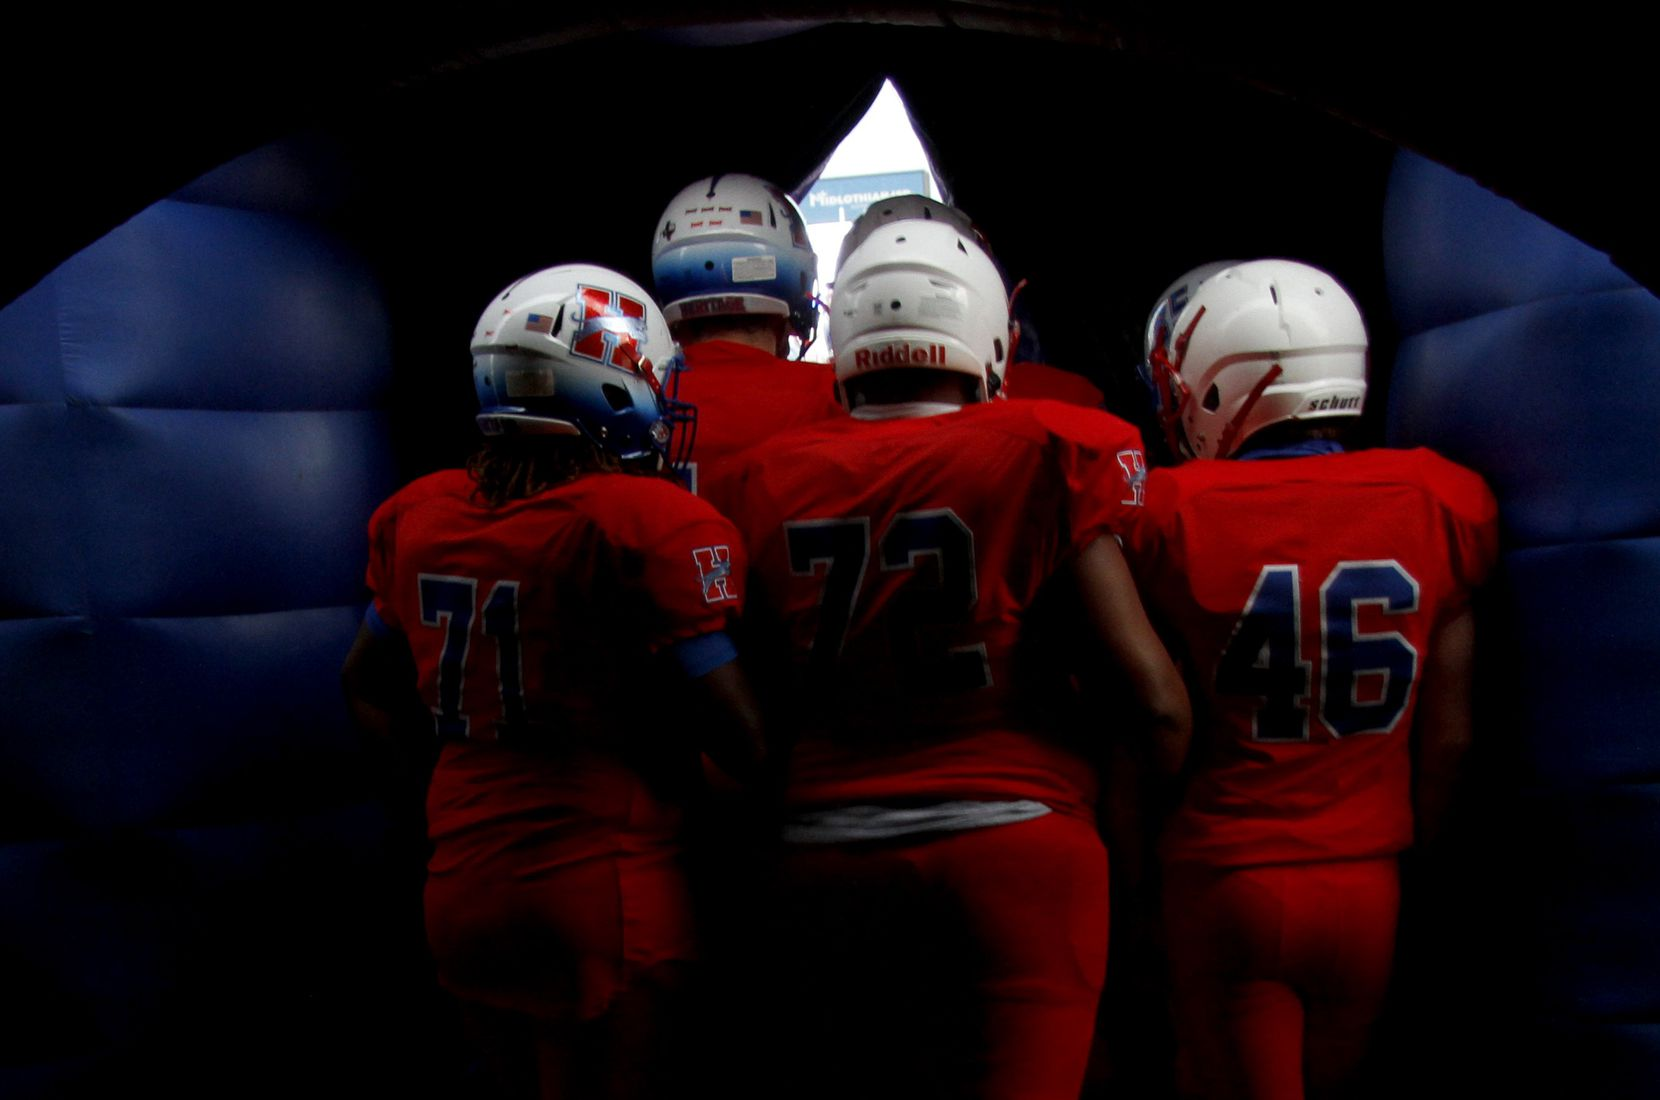 Midlothian Heritage players huddle and peek through an opening of their team inflatable prior to team announcements before the kickoff of their game against Lindale. The two teams played their Class 4A football game at Midlothian ISD Multipurpose Stadium in Midlothian on September 4, 2020. (Steve Hamm/ Special Contributor)